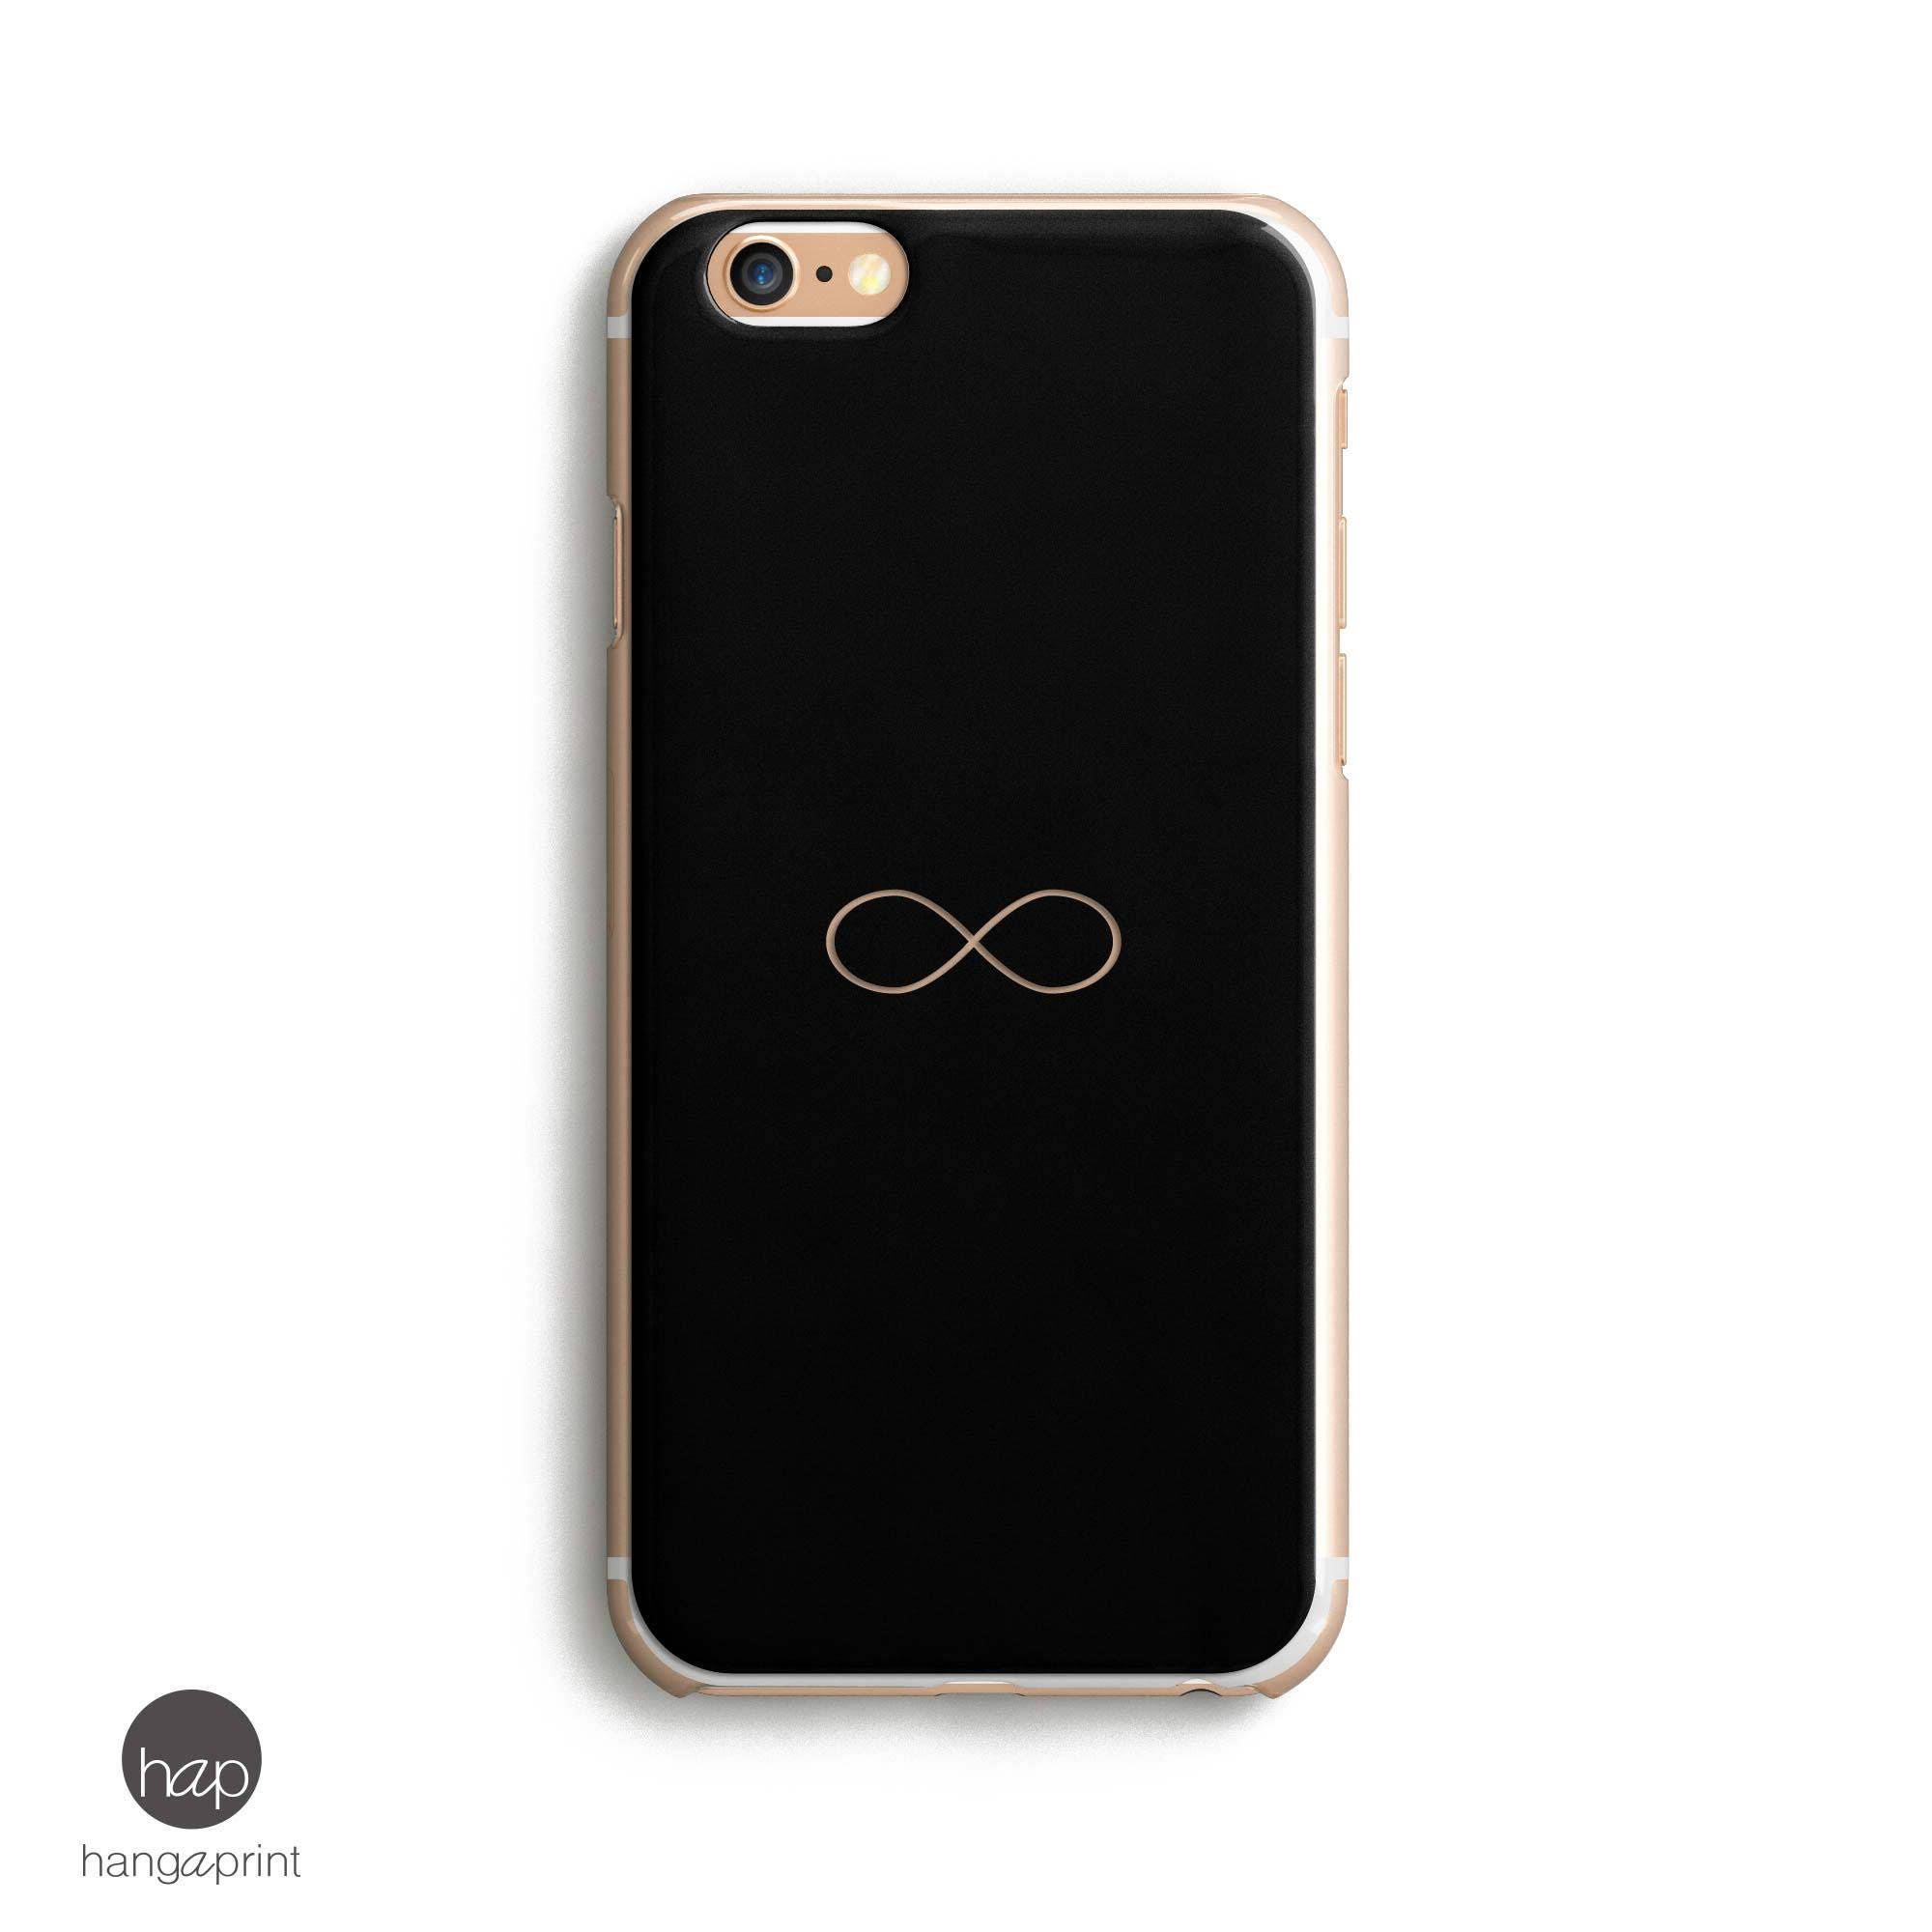 infinity symbol iphone 6s iphone black iphone 6 infinity symbol black 9015